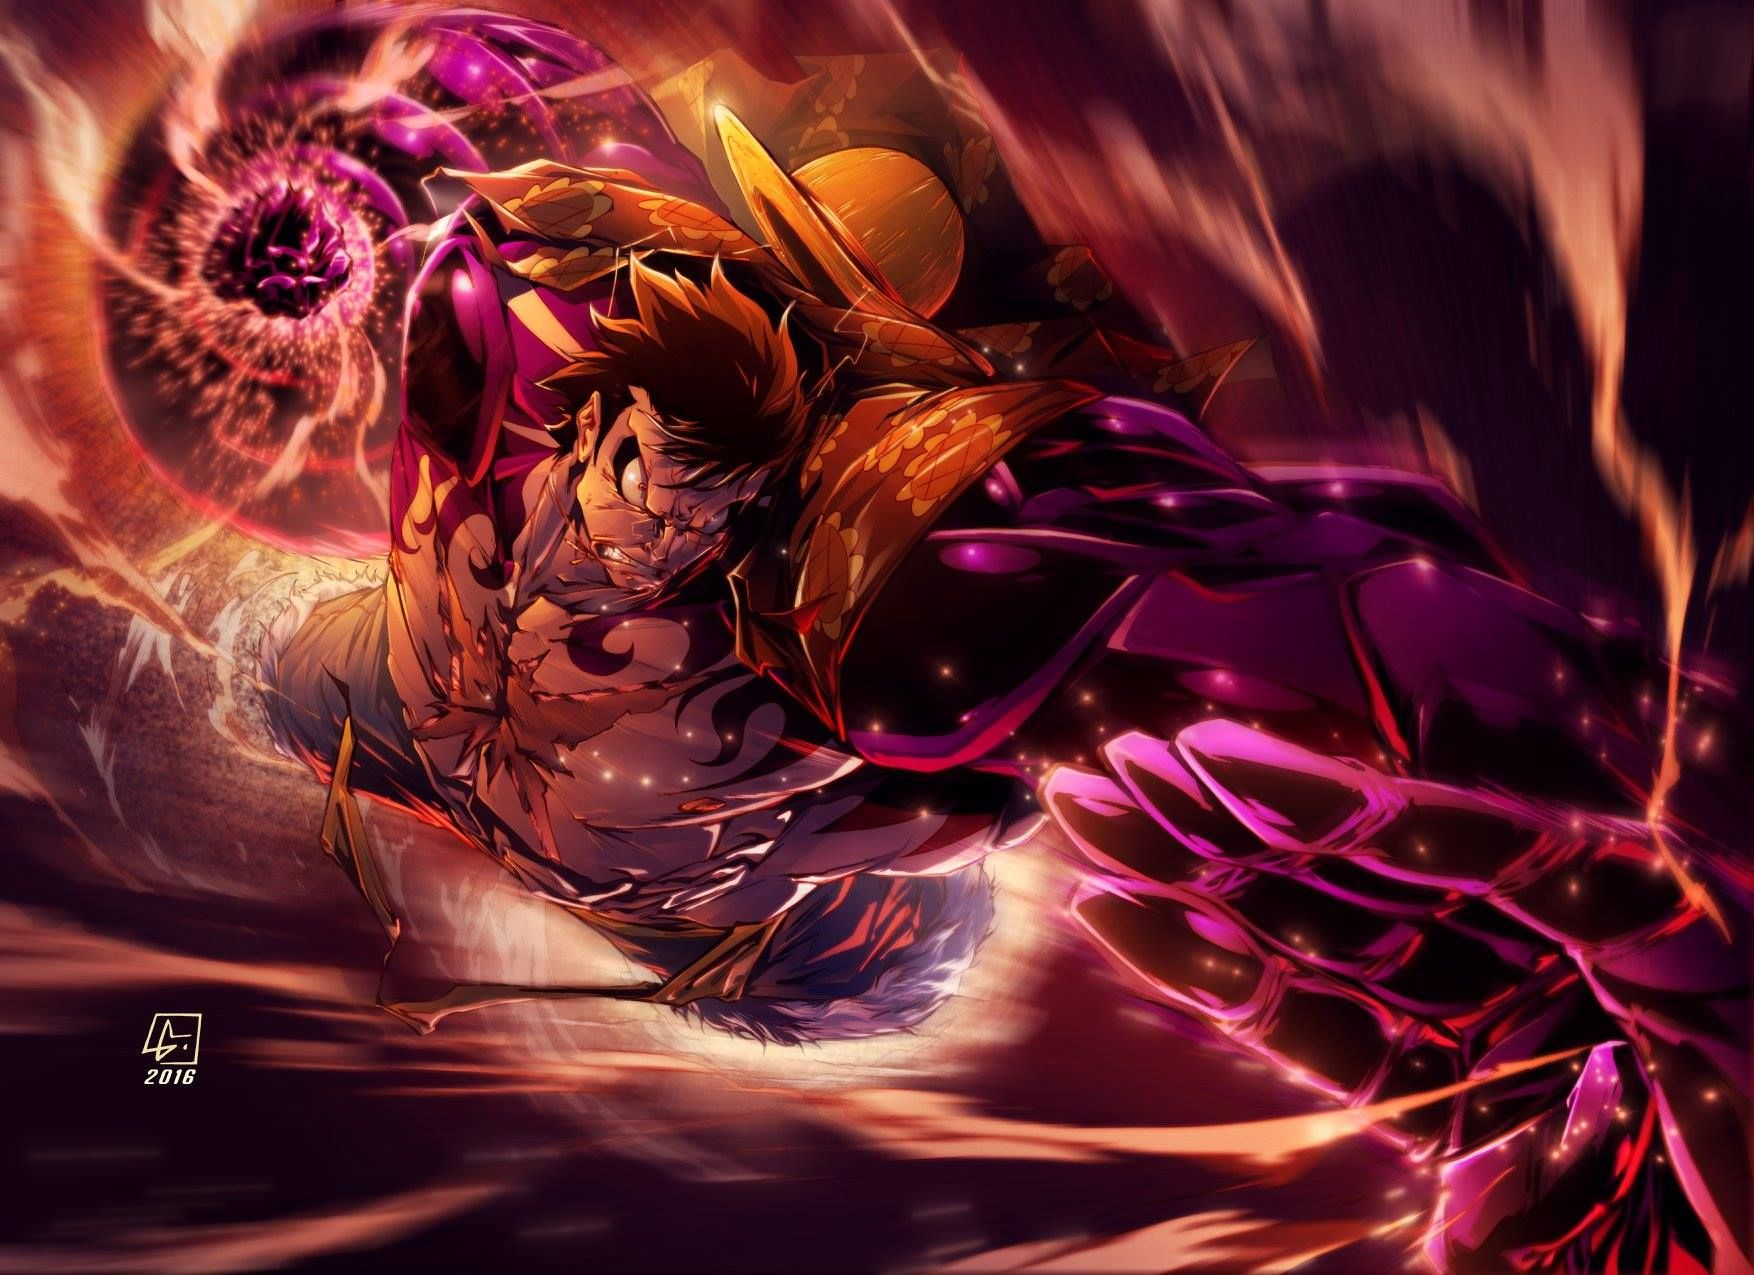 During those 6 months, luffy probably developed it then. Gear 4th Luffy by Luis Figueiredo. | Luffy gear4, One ...